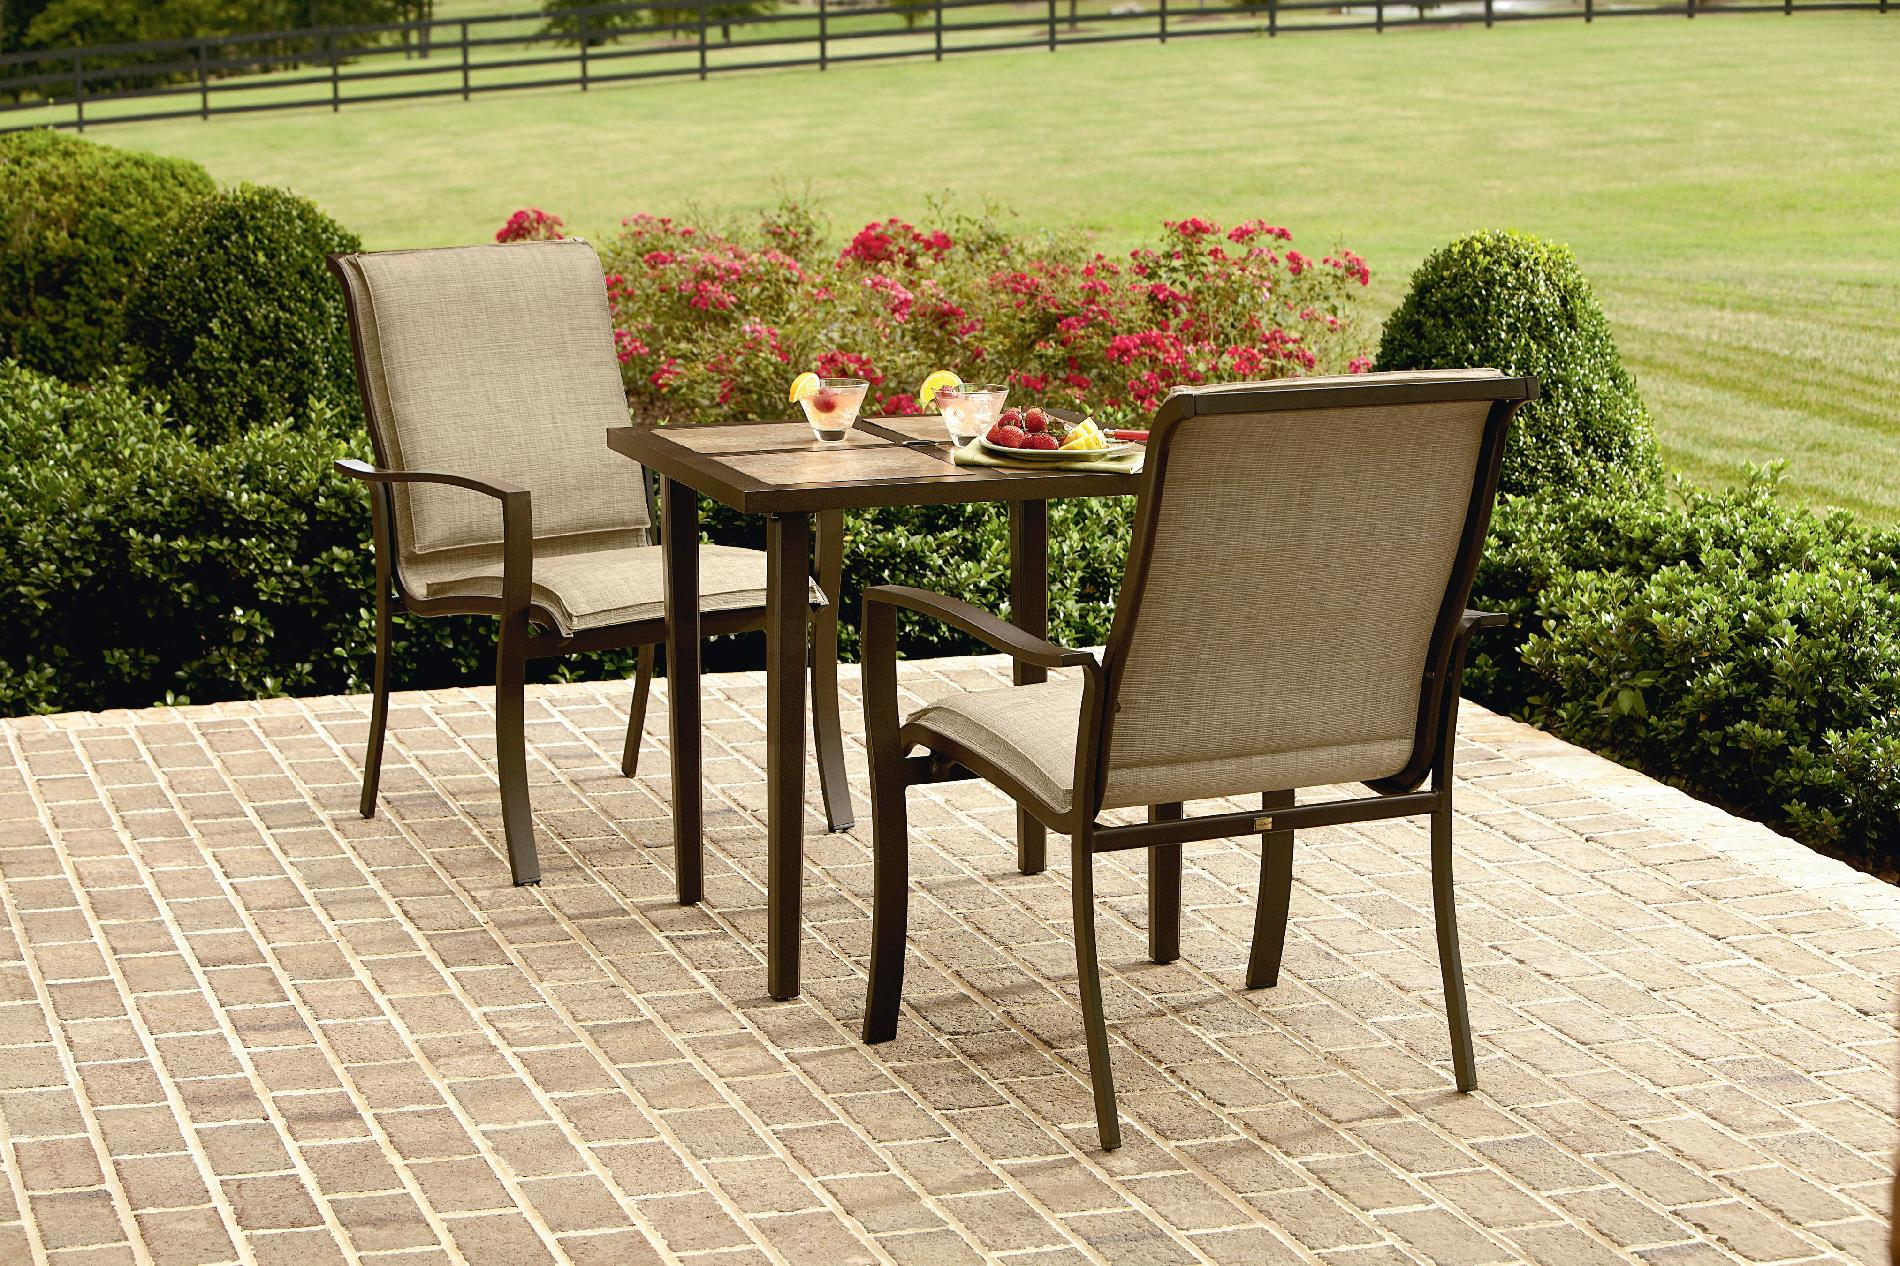 La-boy Lucas 3 Piece Bistro Set - Outdoor Living Patio